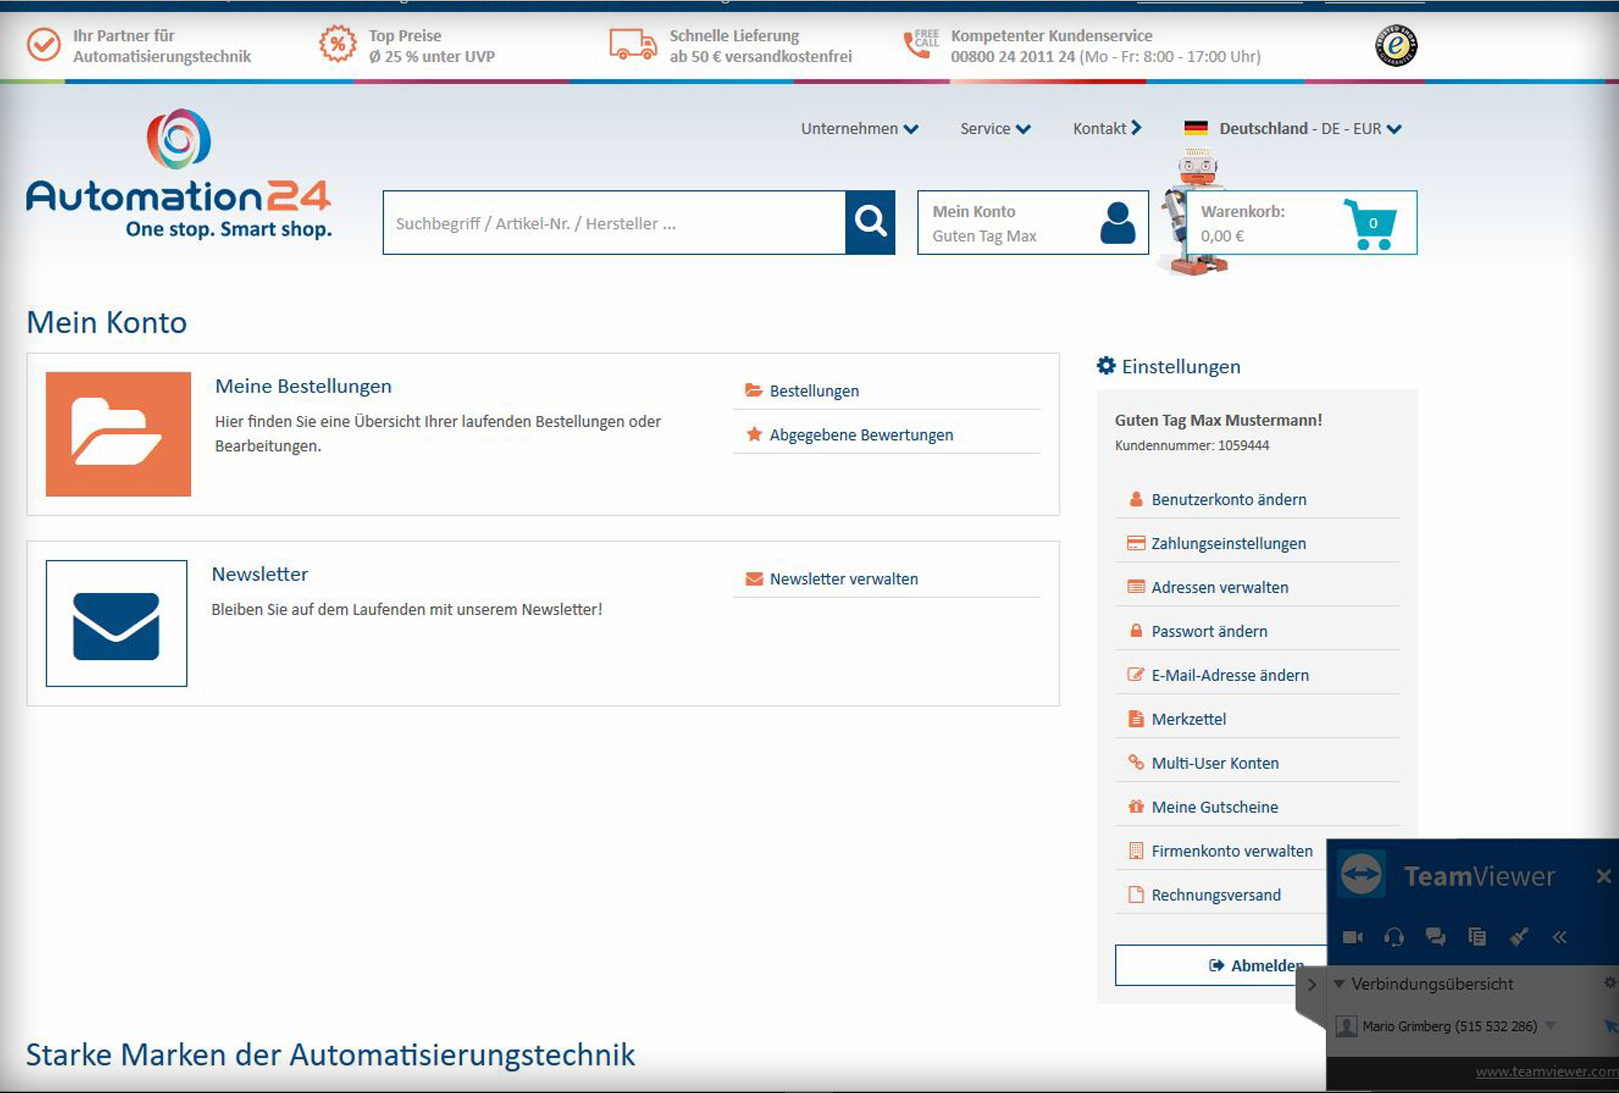 Automation24 Remote Support bei Shopfragen